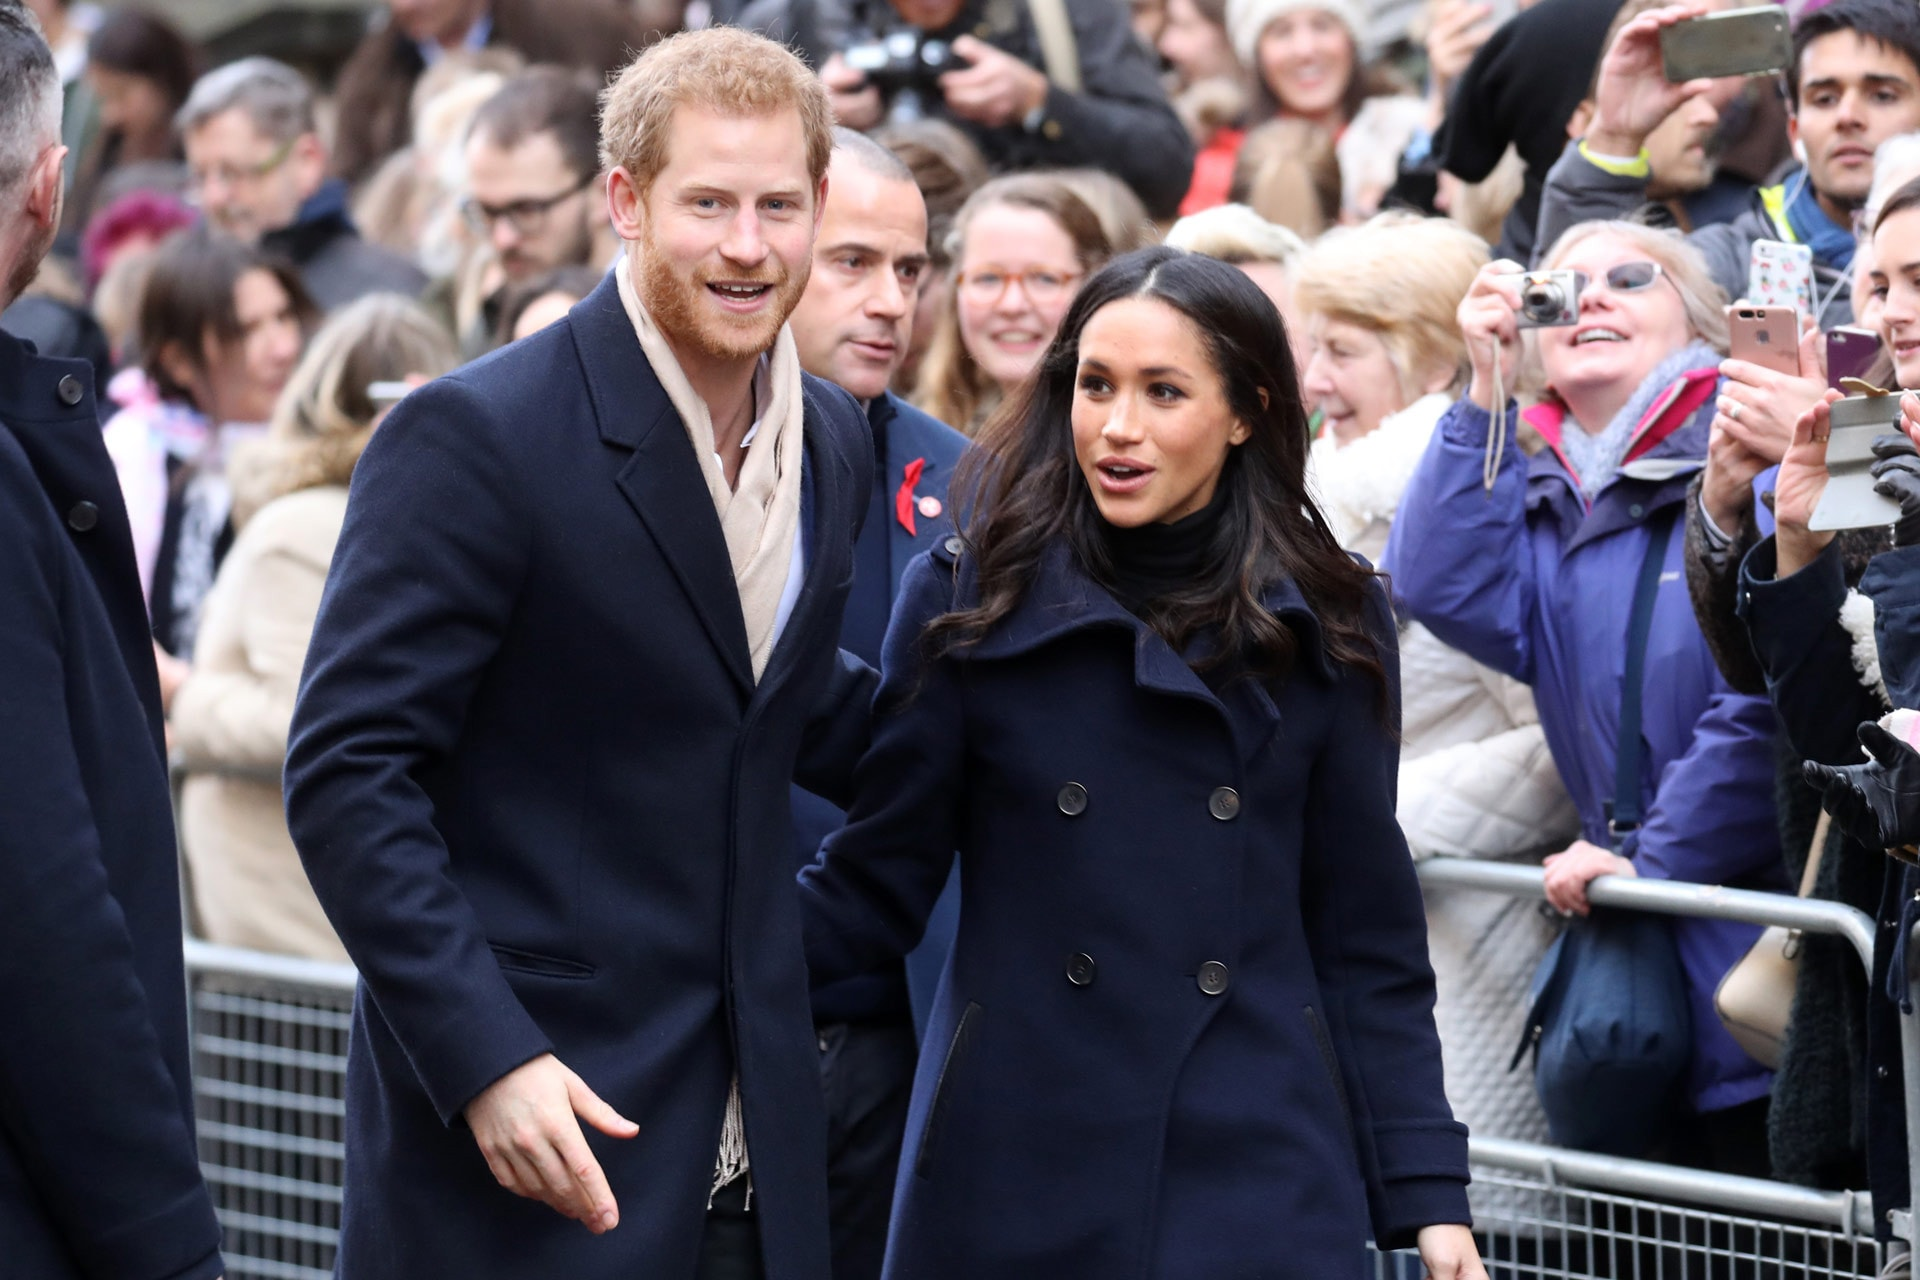 Prince Harry and Meghan Markle reveal royal wedding photographer